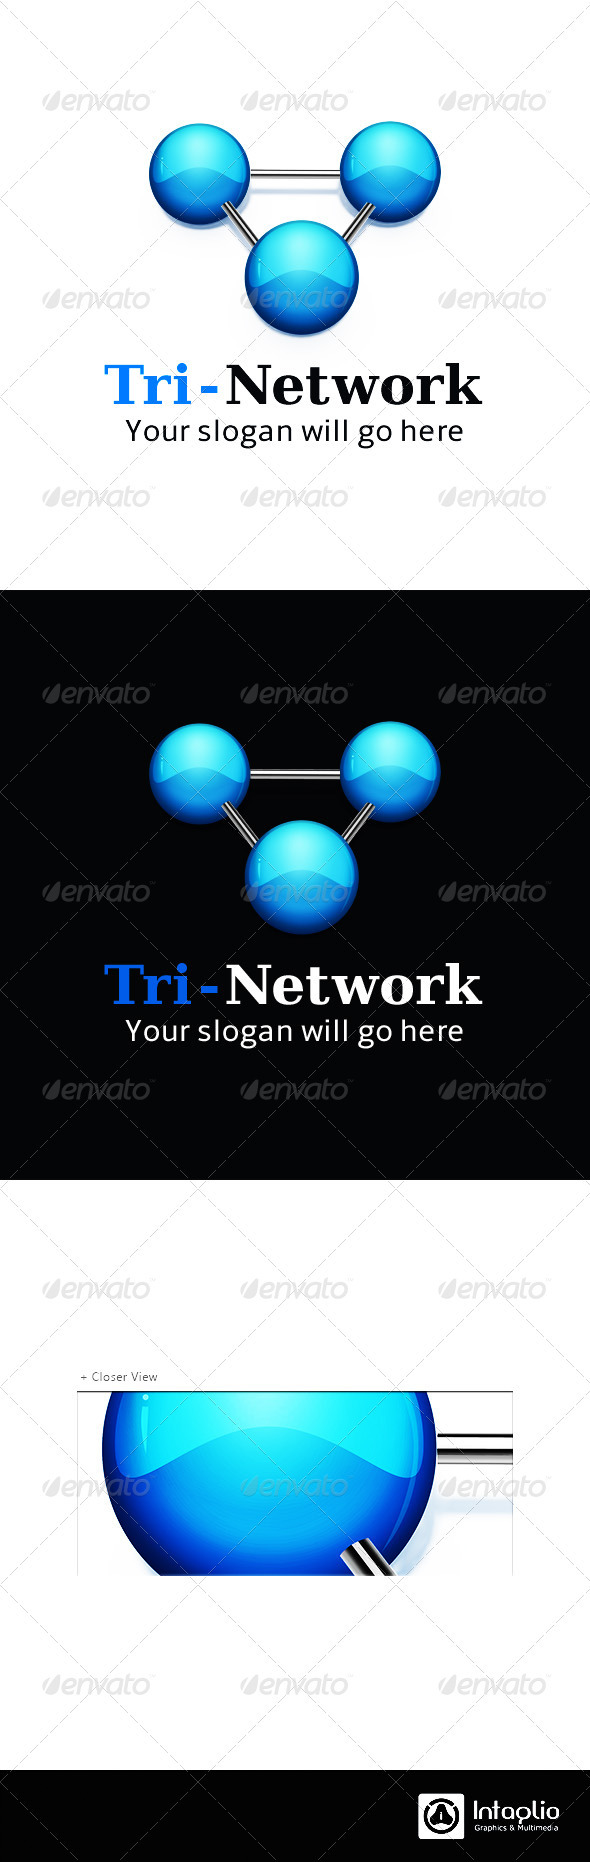 Technology Logo - Tri-Network - 3d Abstract